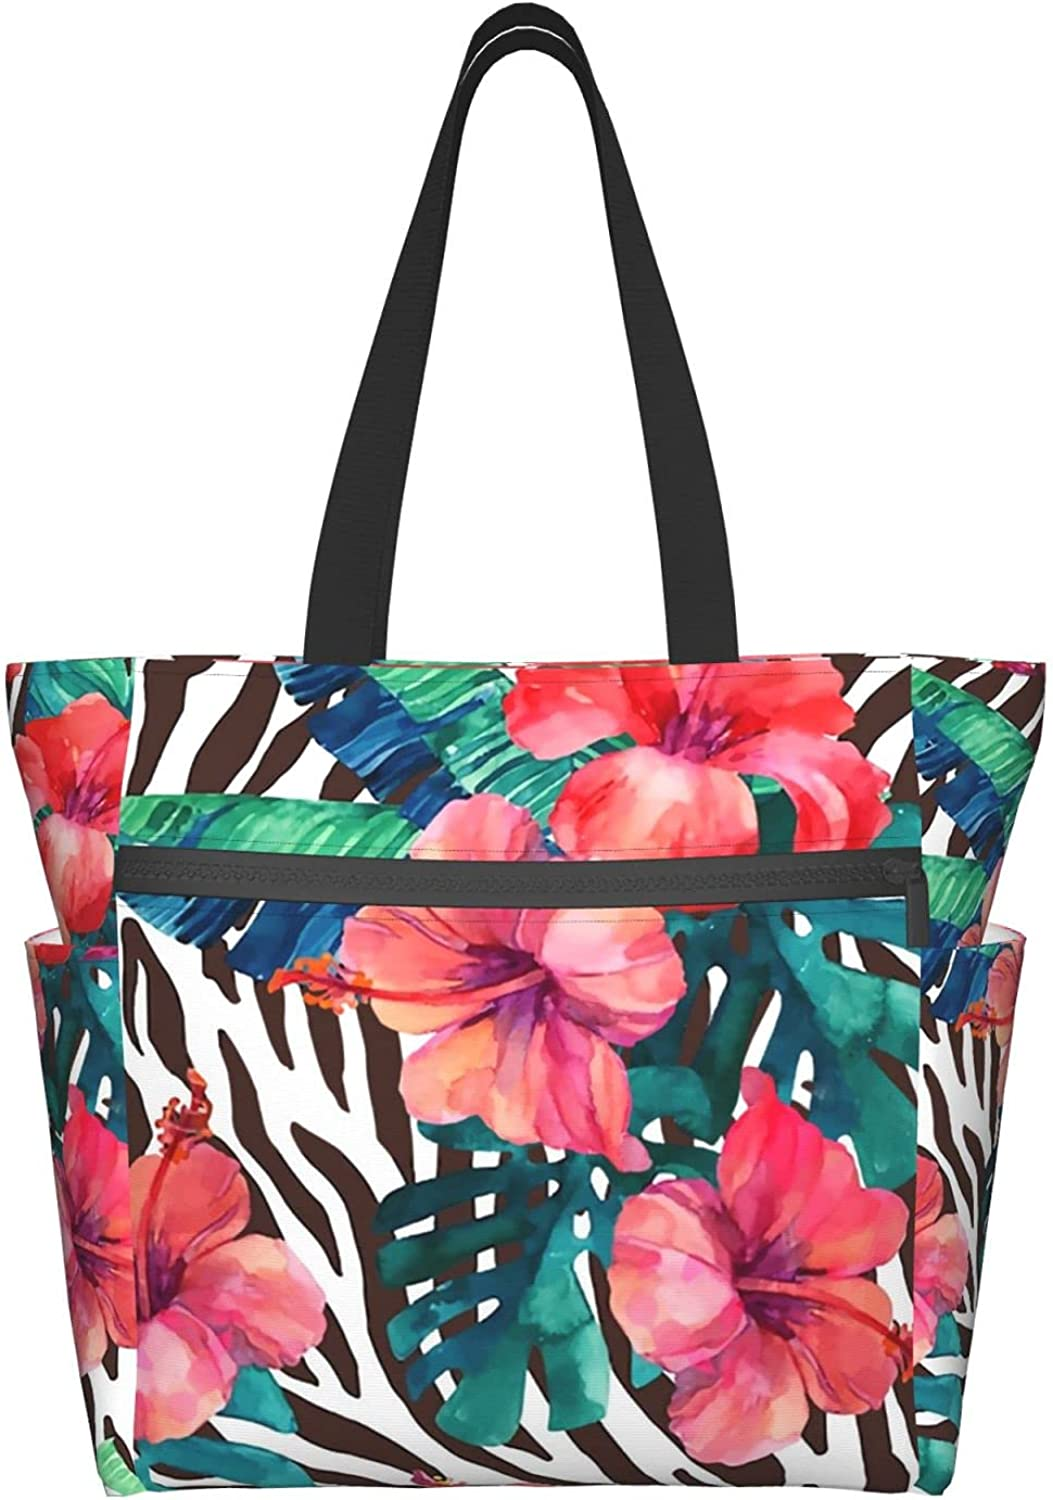 Tote Bag with Zipper for Super sale period limited Women New mail order Flowers Texture and Daily Animal